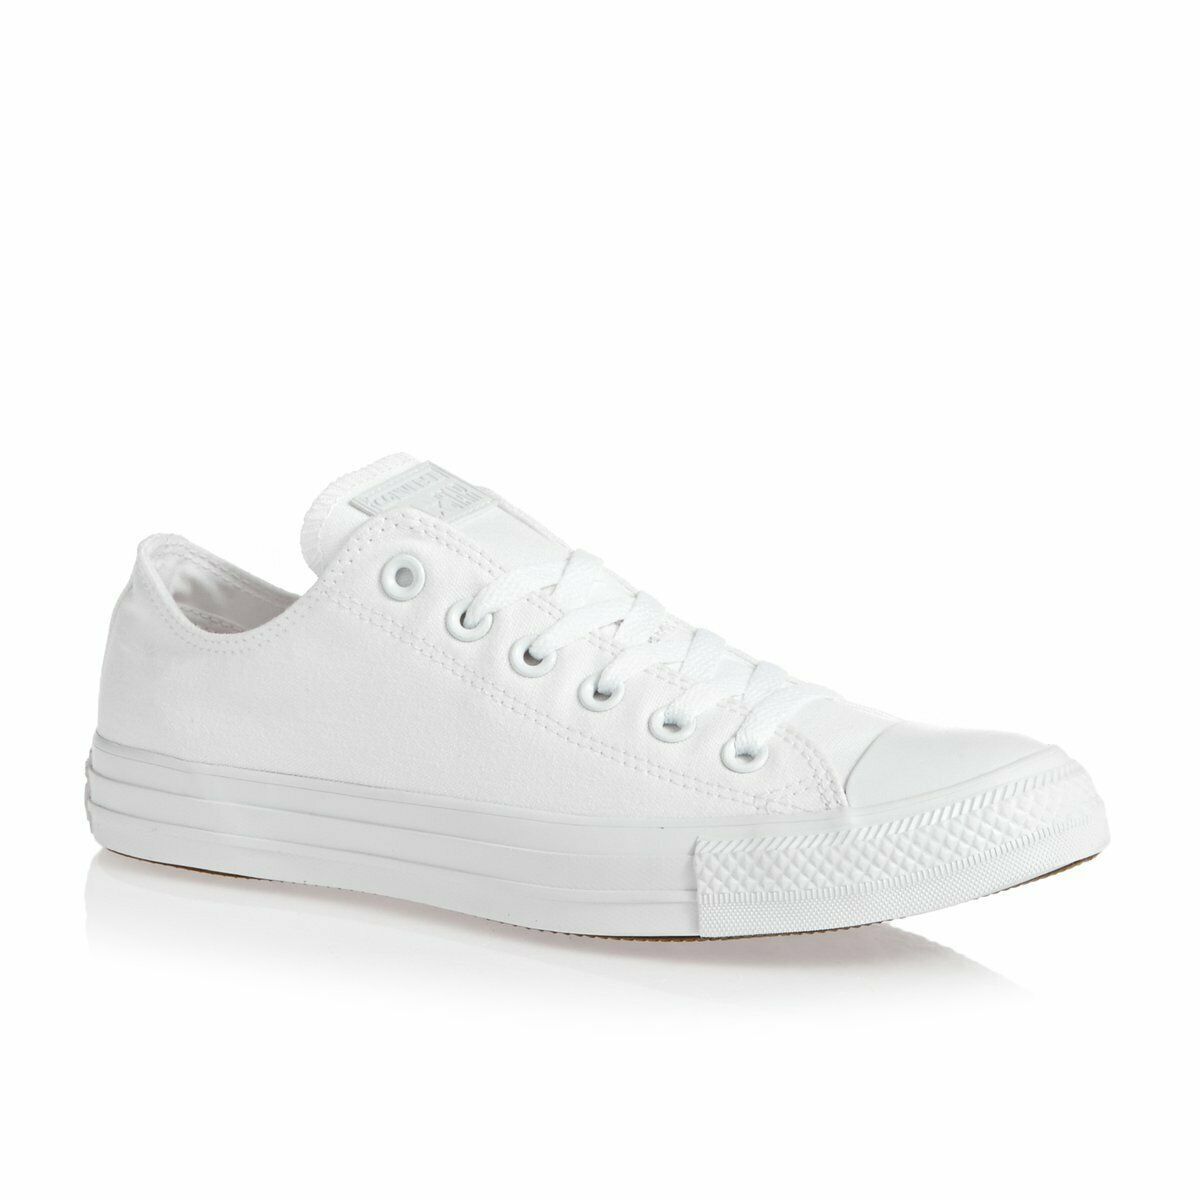 Converse All Star ox Canvas Womens & Mens Trainers shoes White Mono